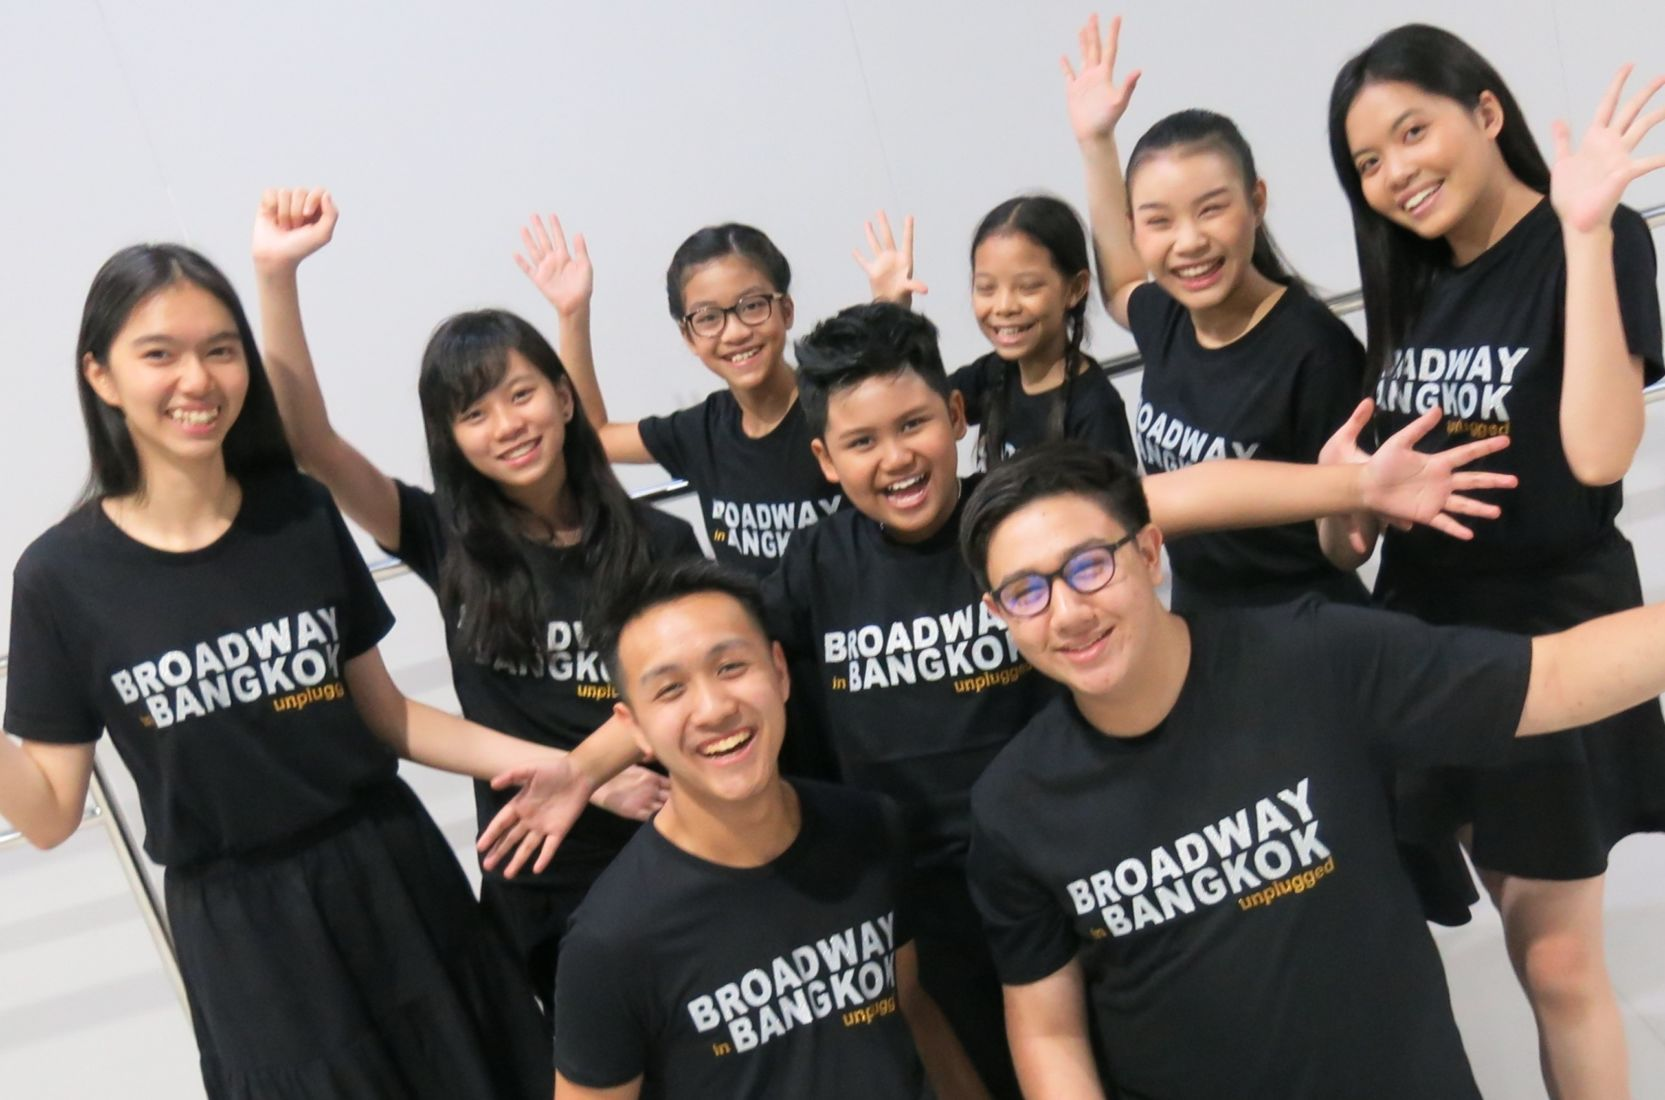 Broadway in Bangkok...unplugged. Live theatre in BKK | News by Thaiger